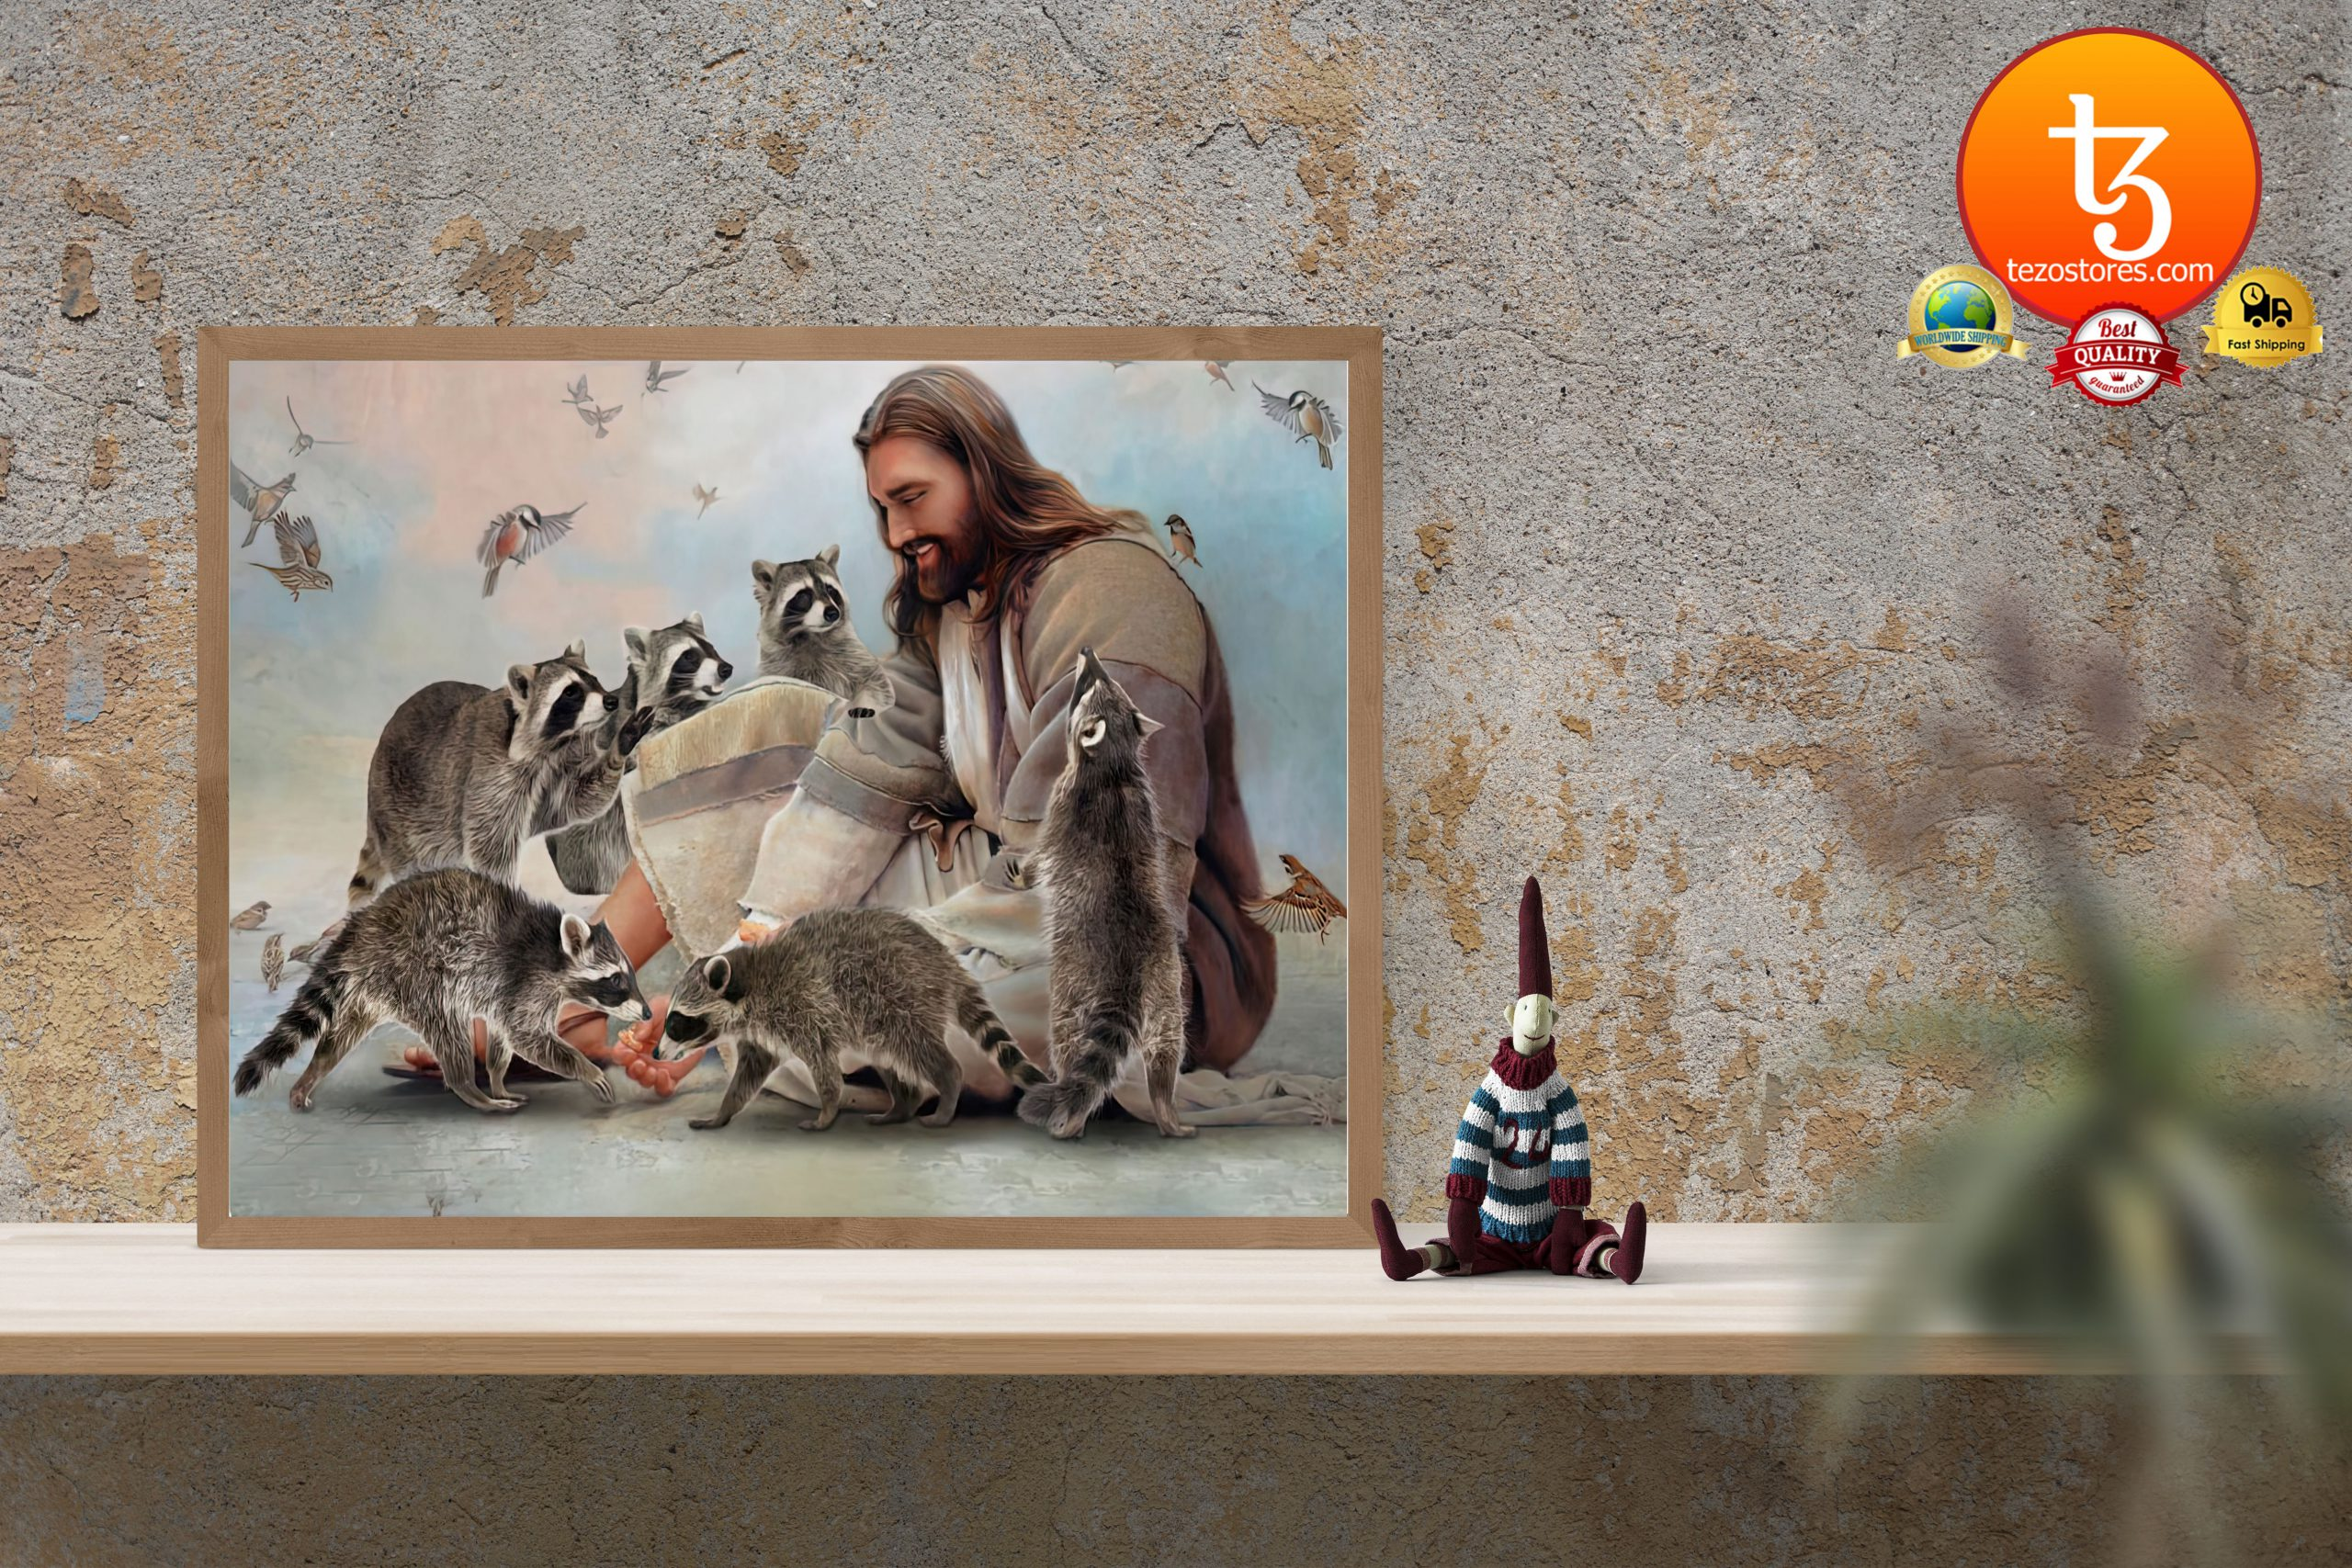 God surrounded by Raccoon Poster3